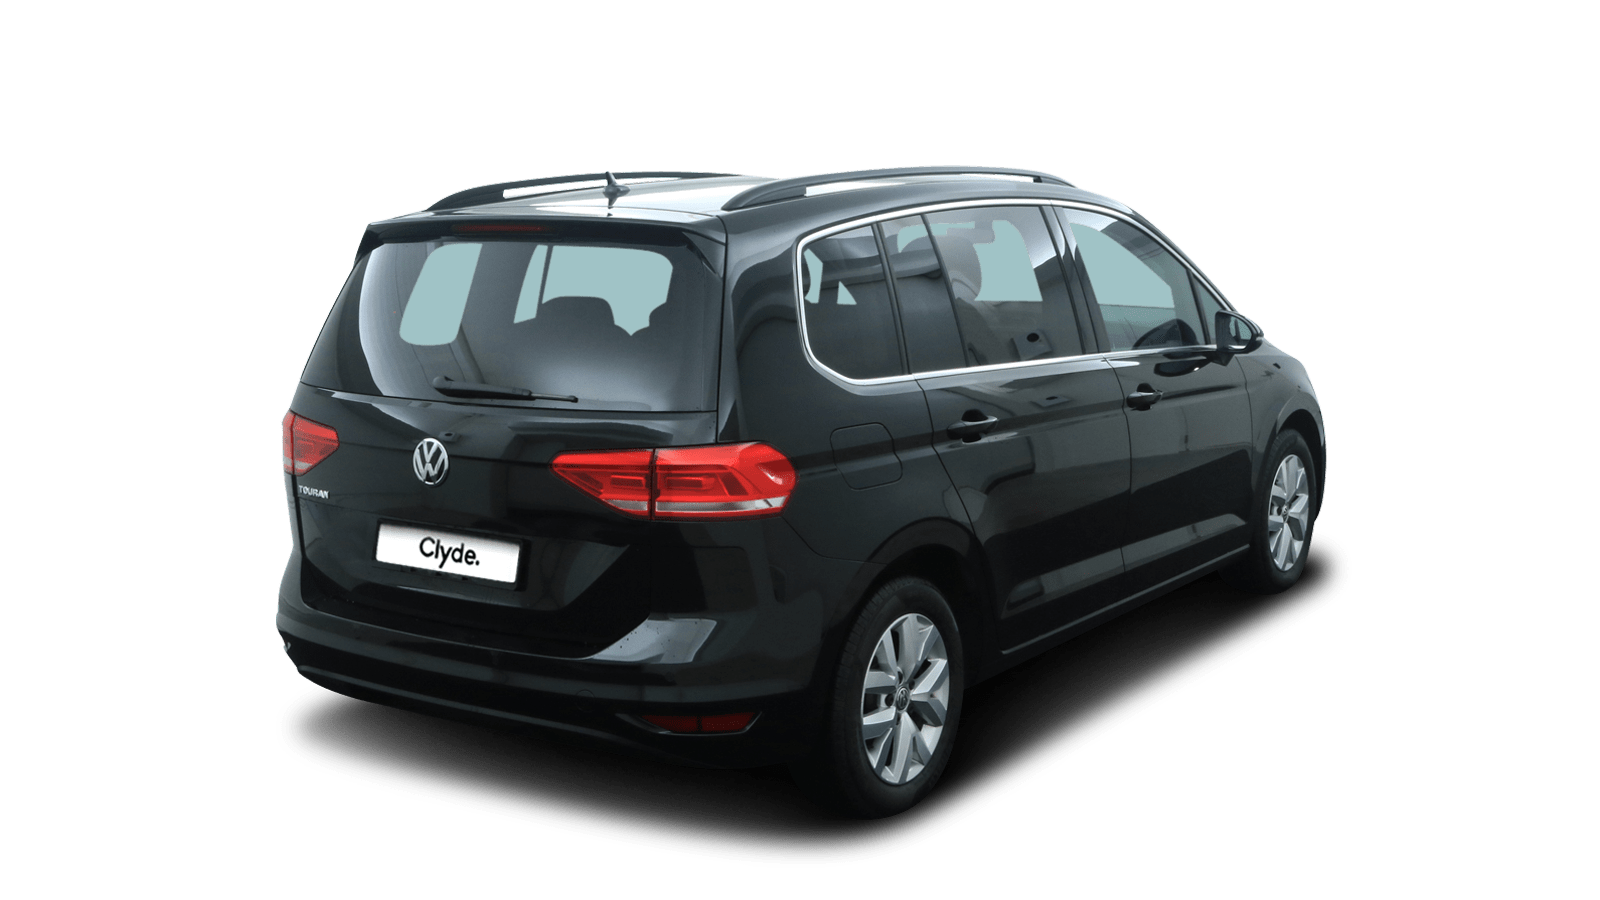 VW Touran Black back - Clyde car subscription